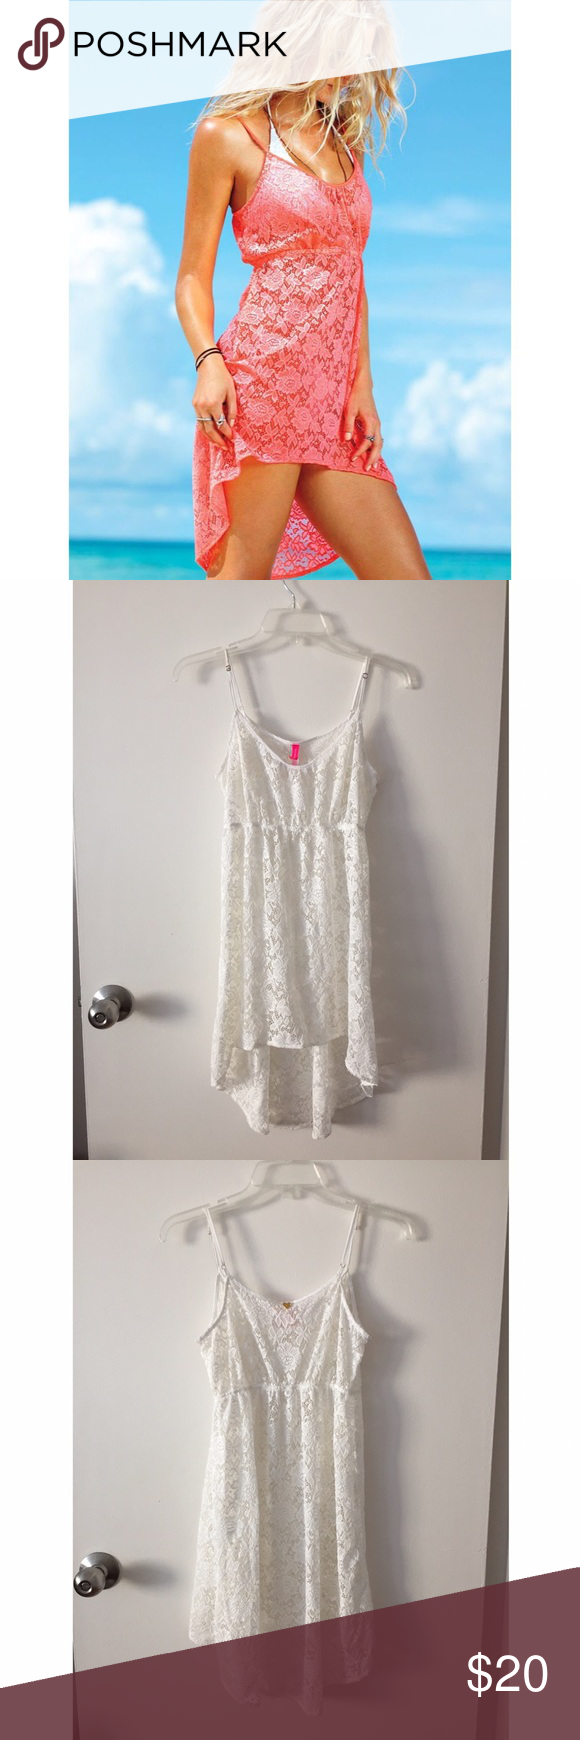 ☀️SUMMER READY☀️ Victoria's Secret lace cover up Victoria's Secret white lace beach cover up with high/low hem. Worn once. Size P which is the equivalent of S. Victoria's Secret Swim Coverups